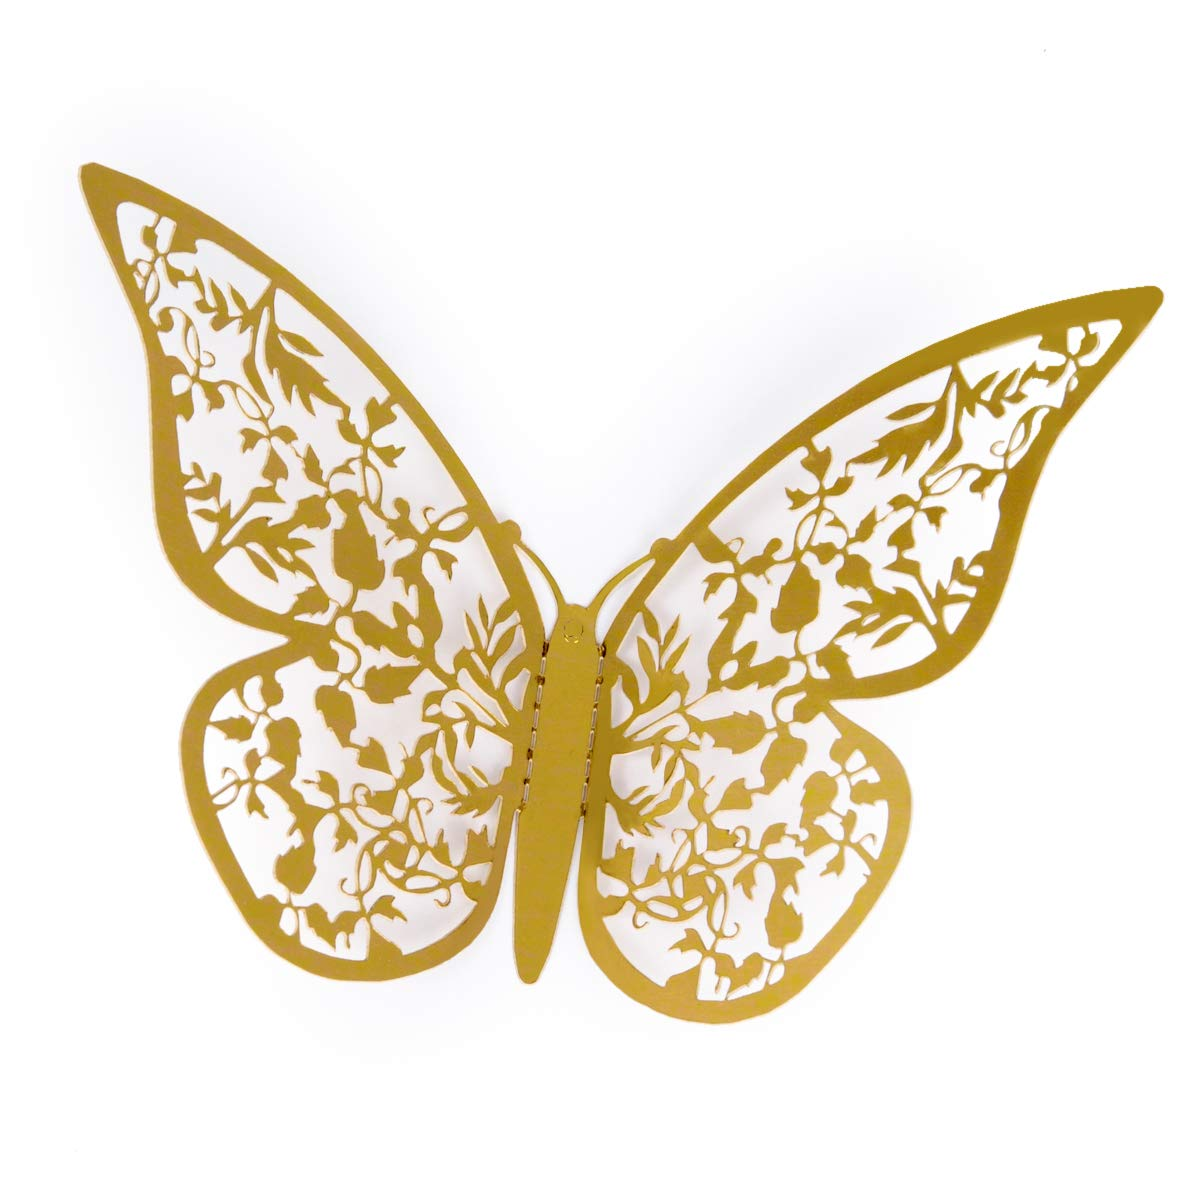 Amazon.com: aooyaoo 12Pcs Golden 3D Butterfly Man-made Removable Art ...